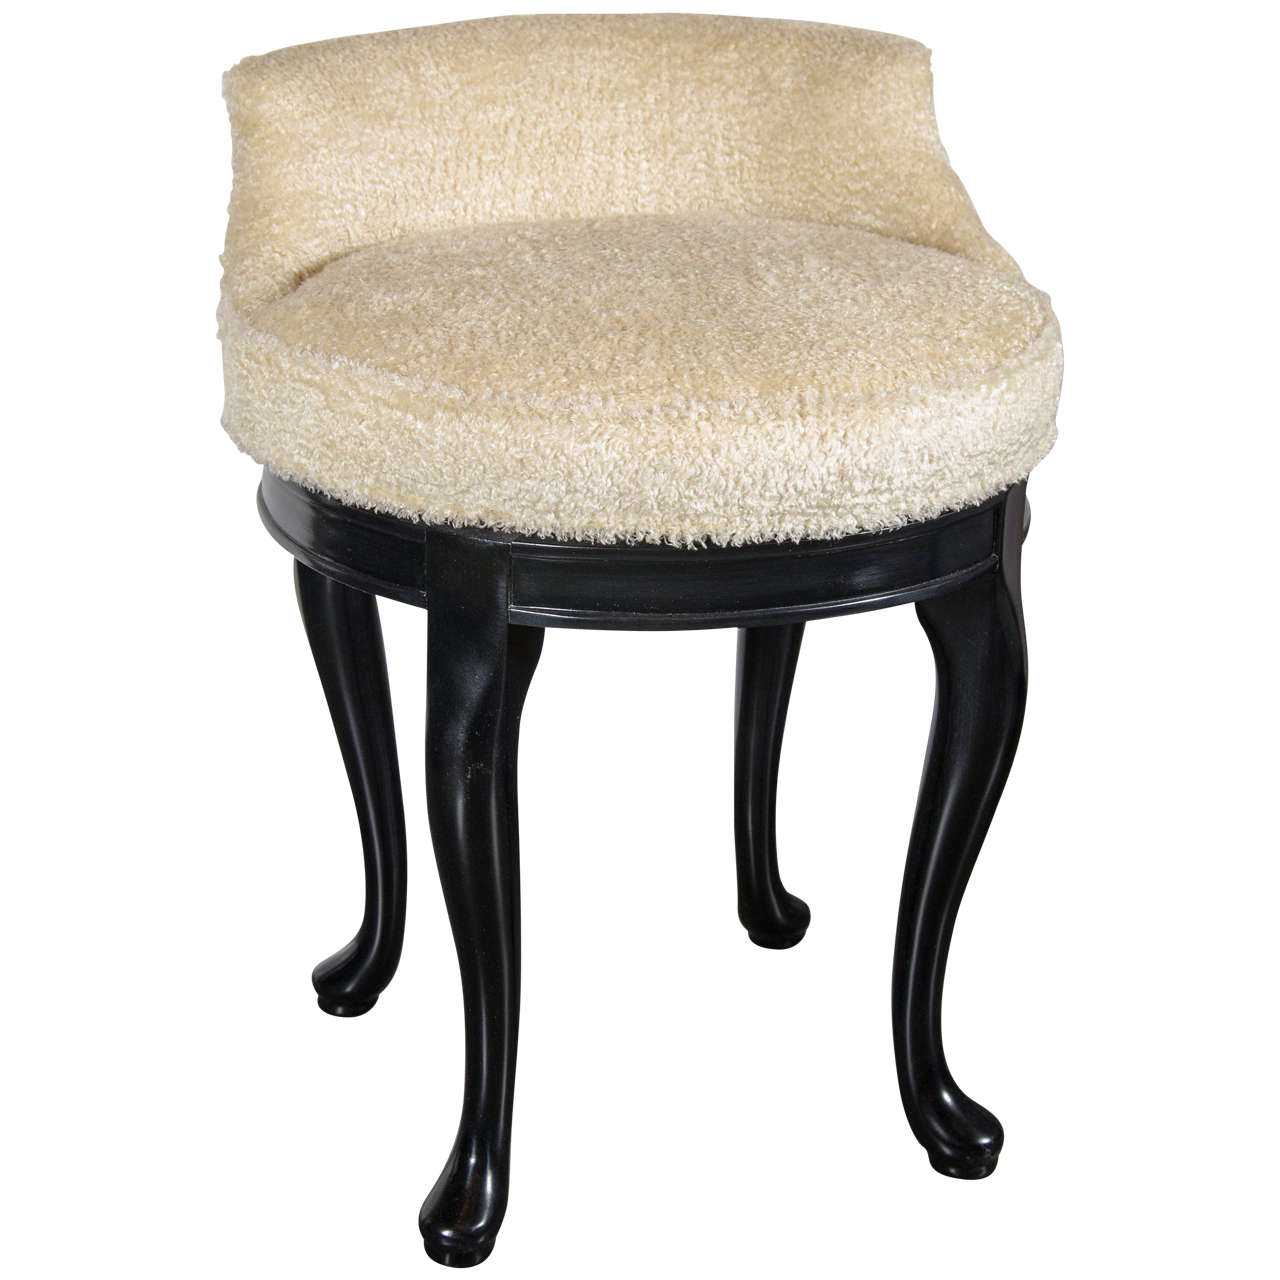 1940s hollywood swivel vanity stool in faux lambs wool and ebonized walnut 1